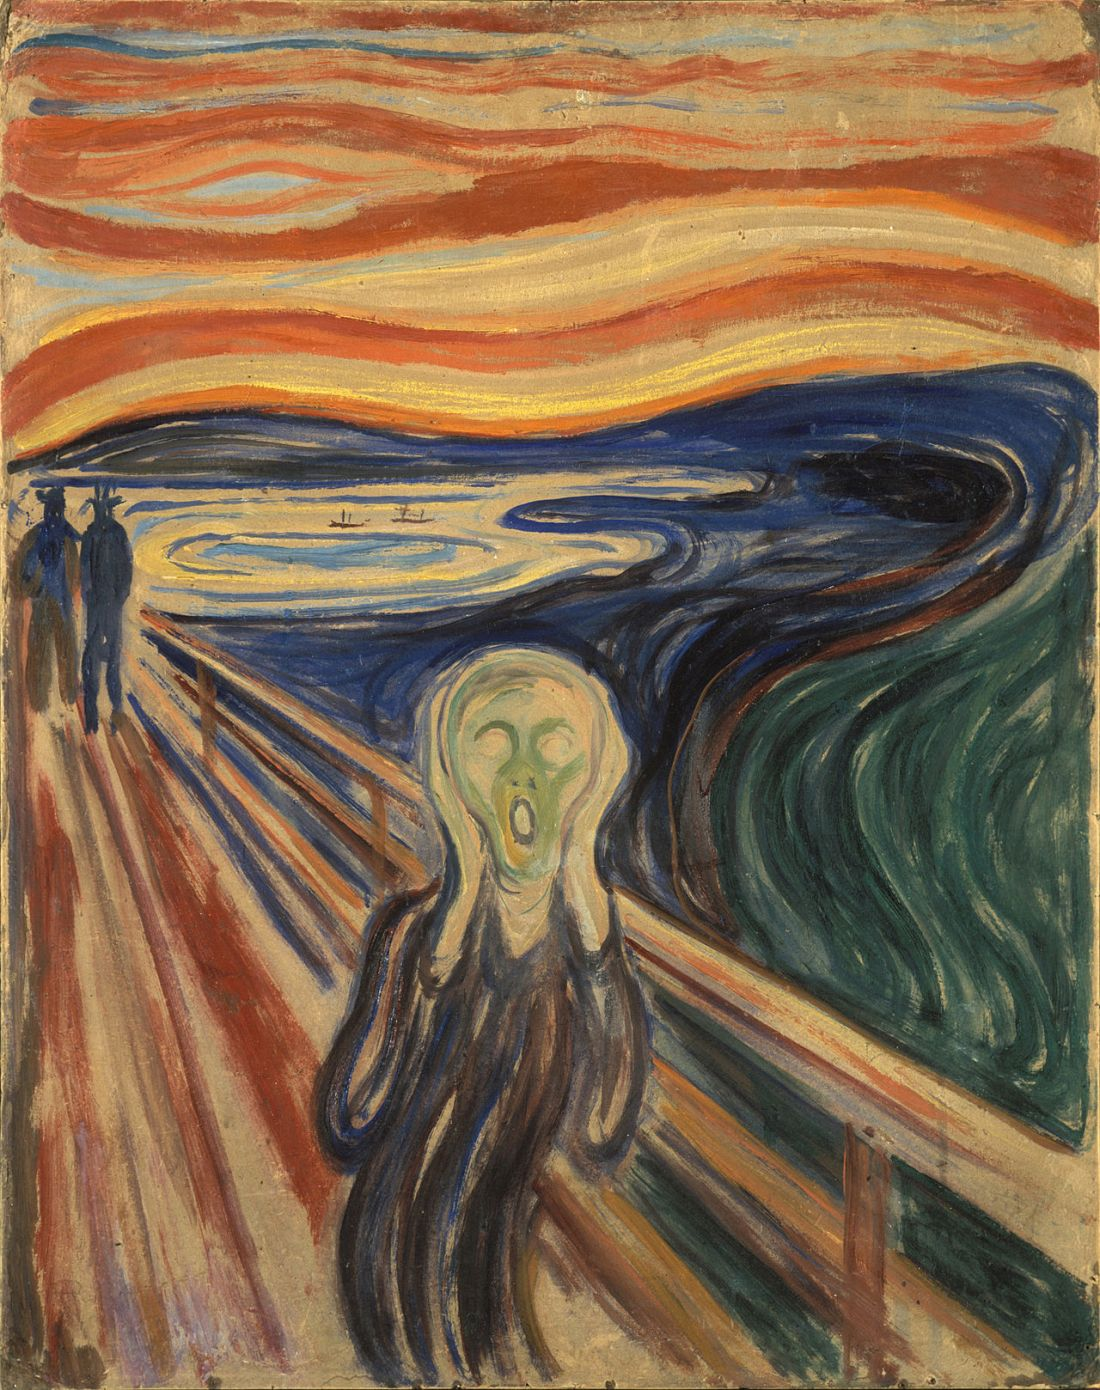 1280px-Edvard_Munch_-_The_Scream_-_Google_Art_Project